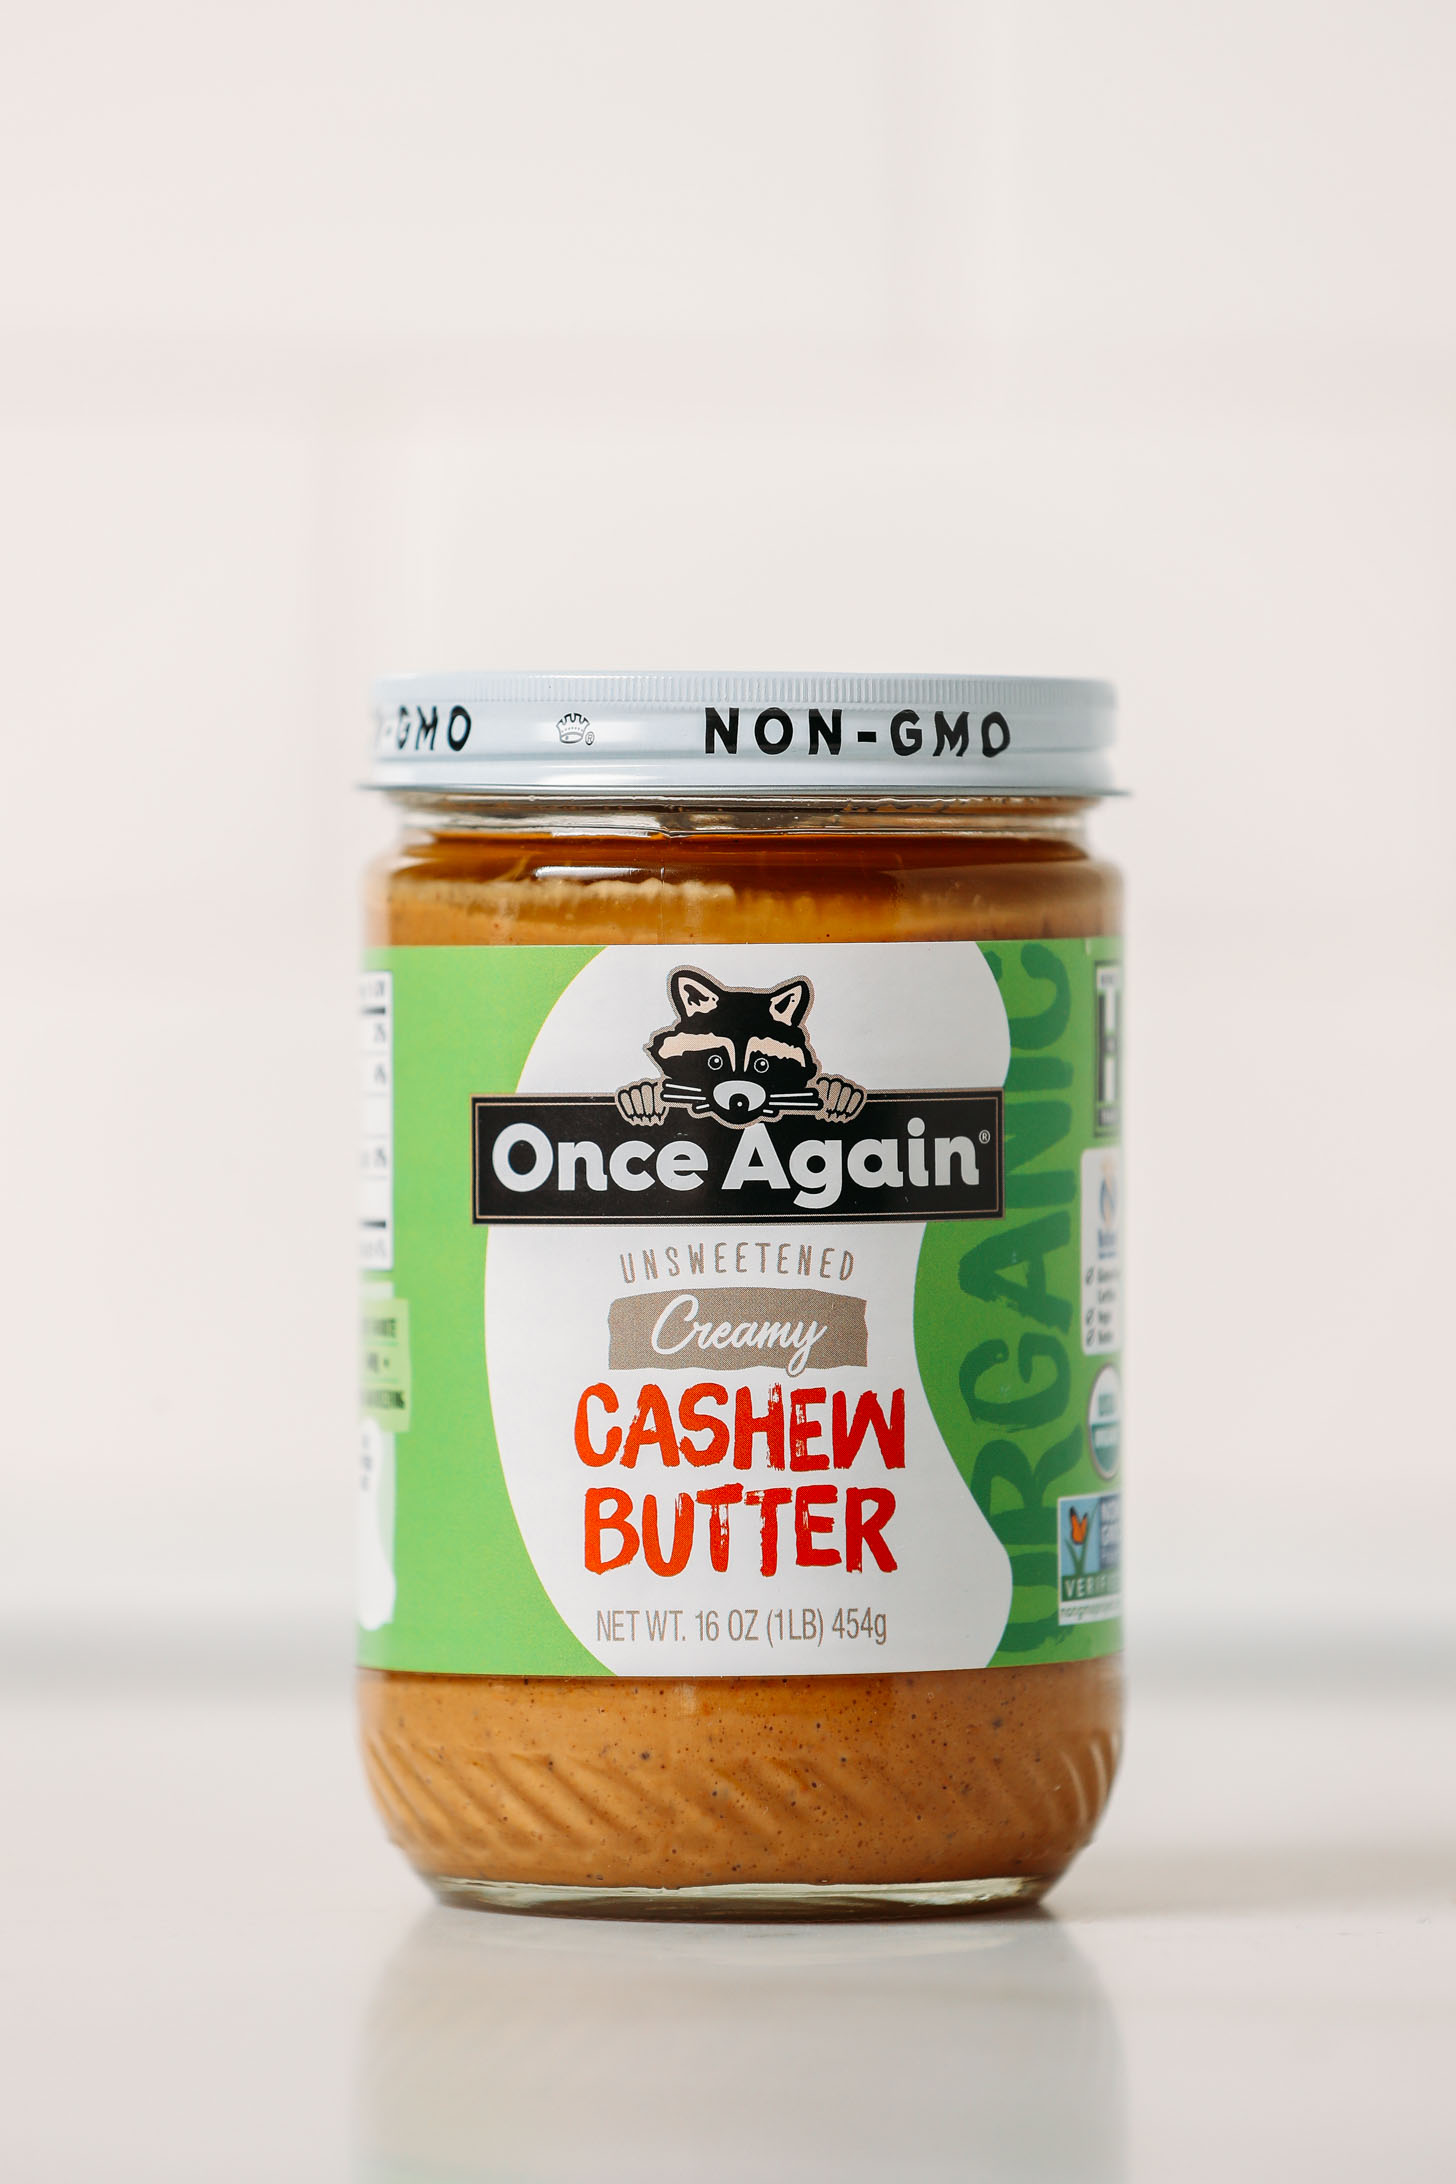 Jar of Once Again Creamy Cashew Butter for our unbiased cashew butter review